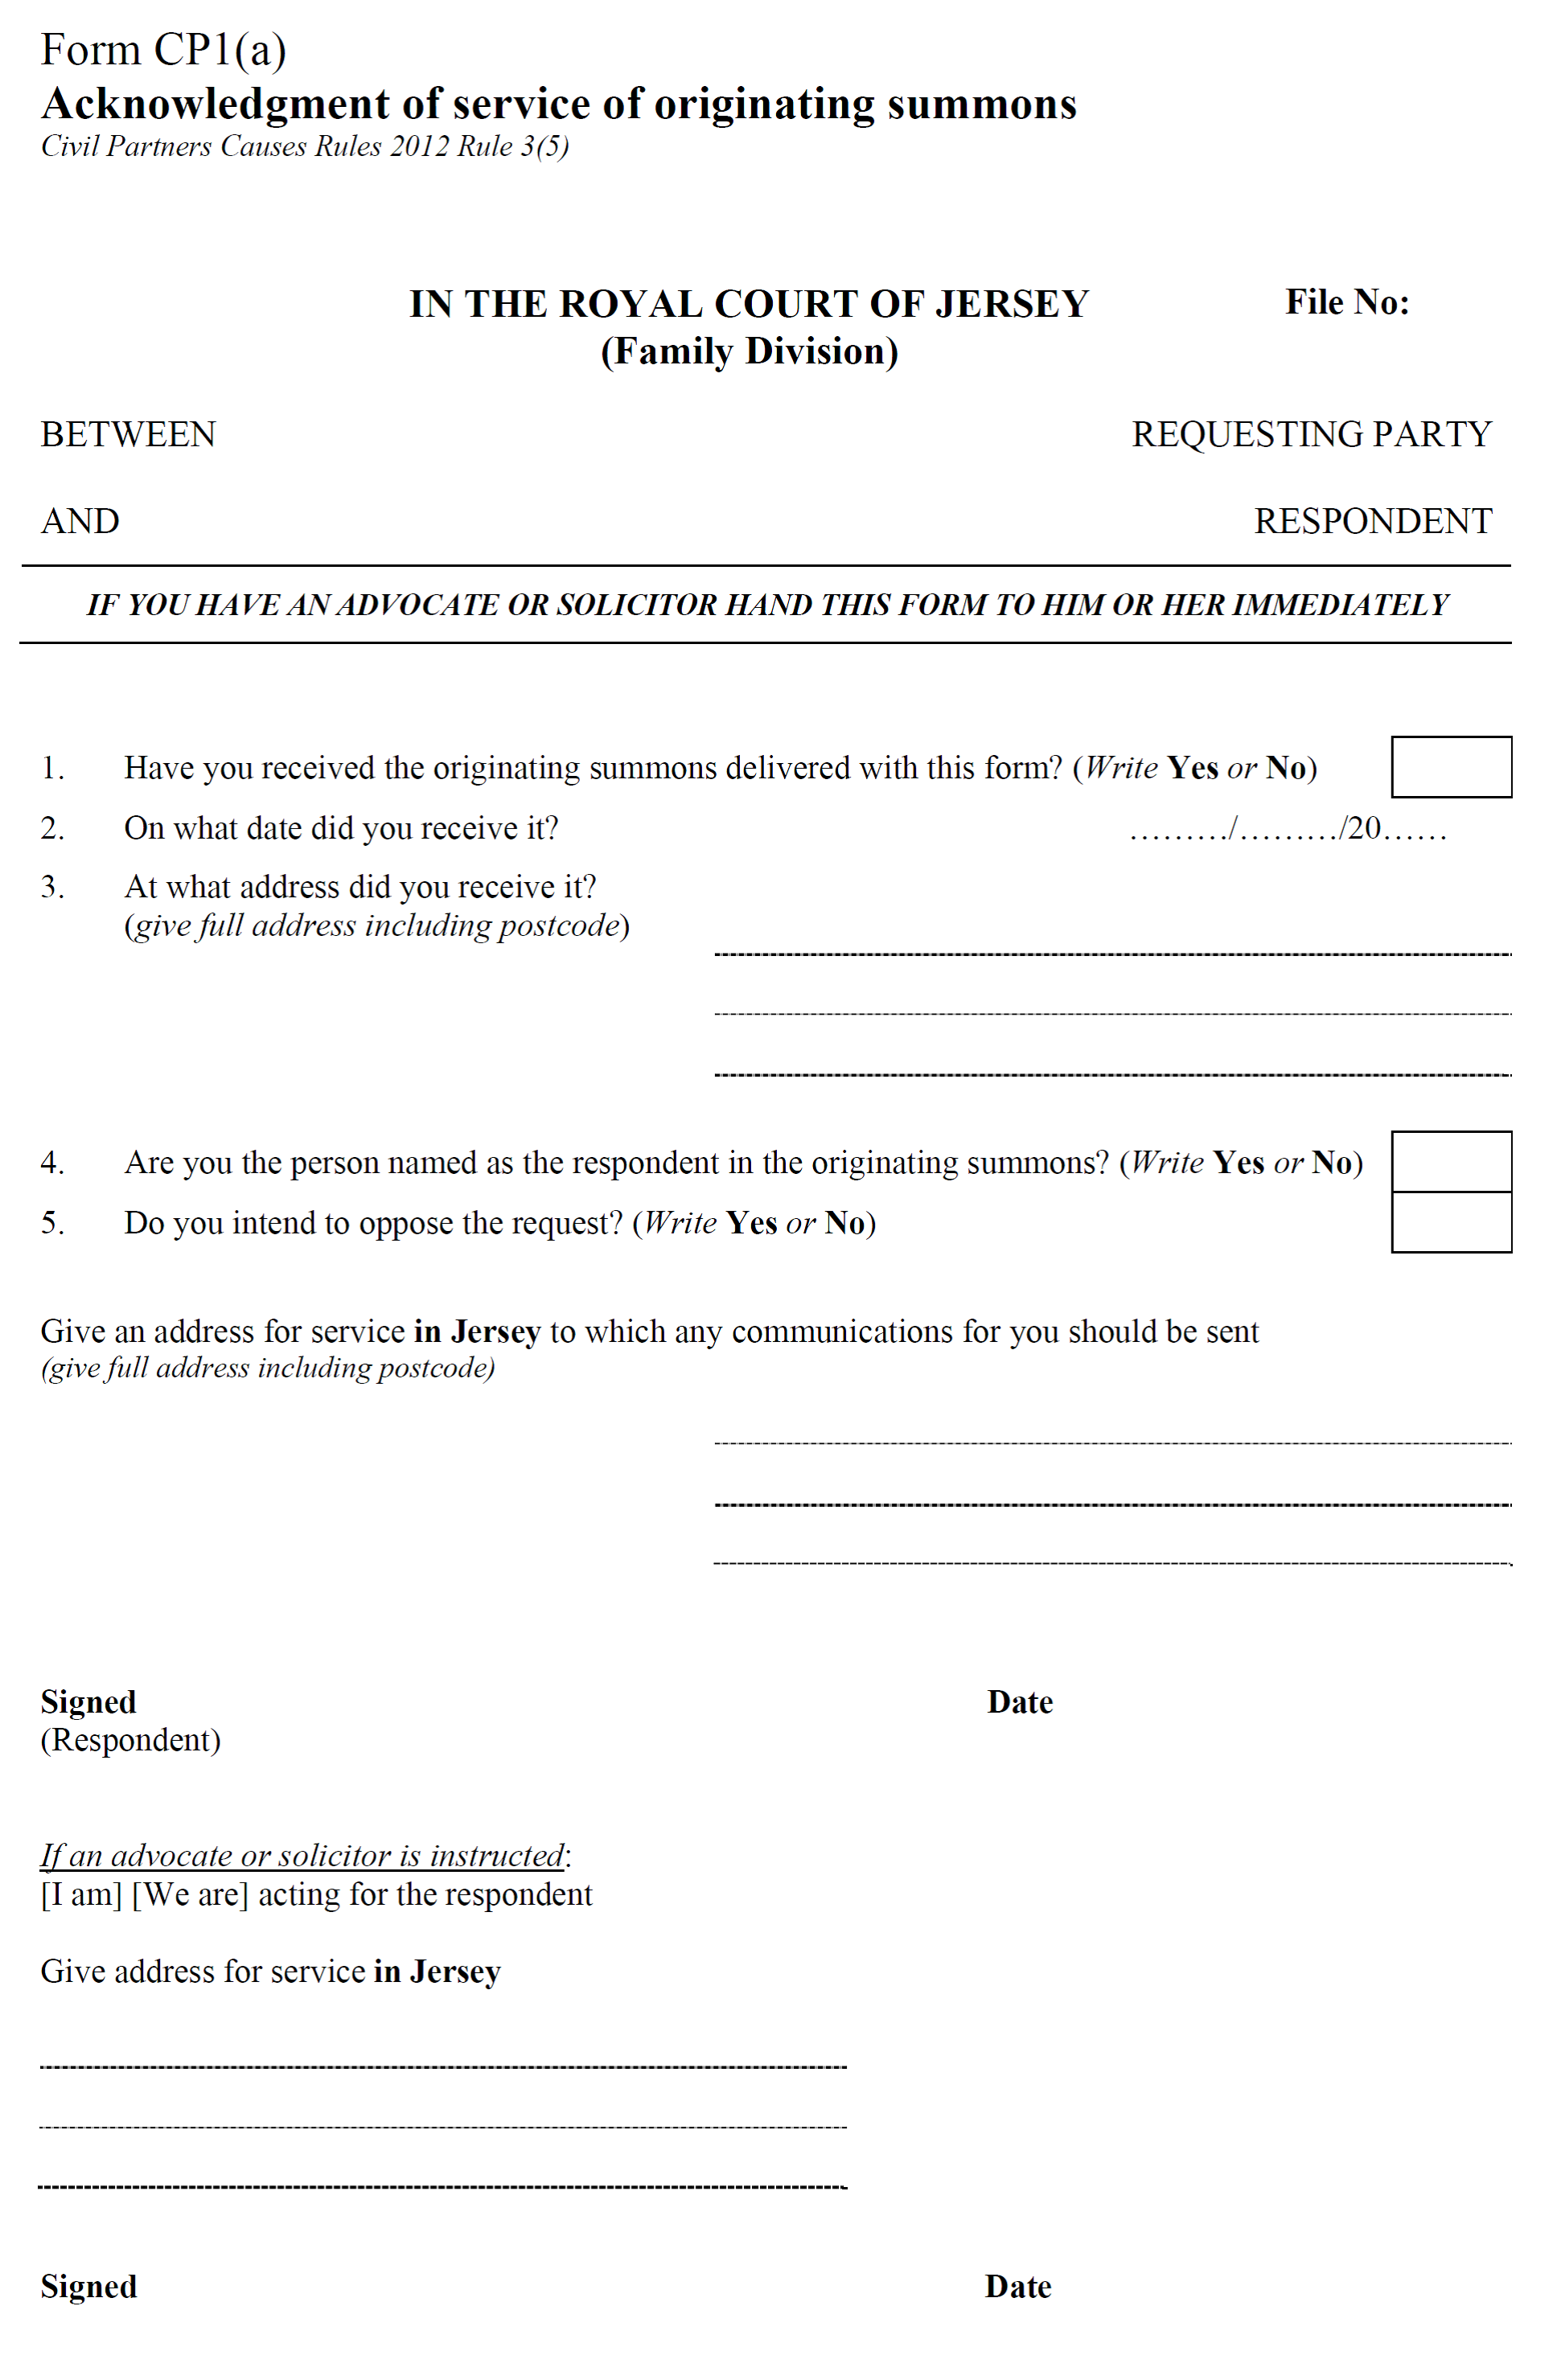 Civil Partners Causes Rules 2012 – Civil Summons Form